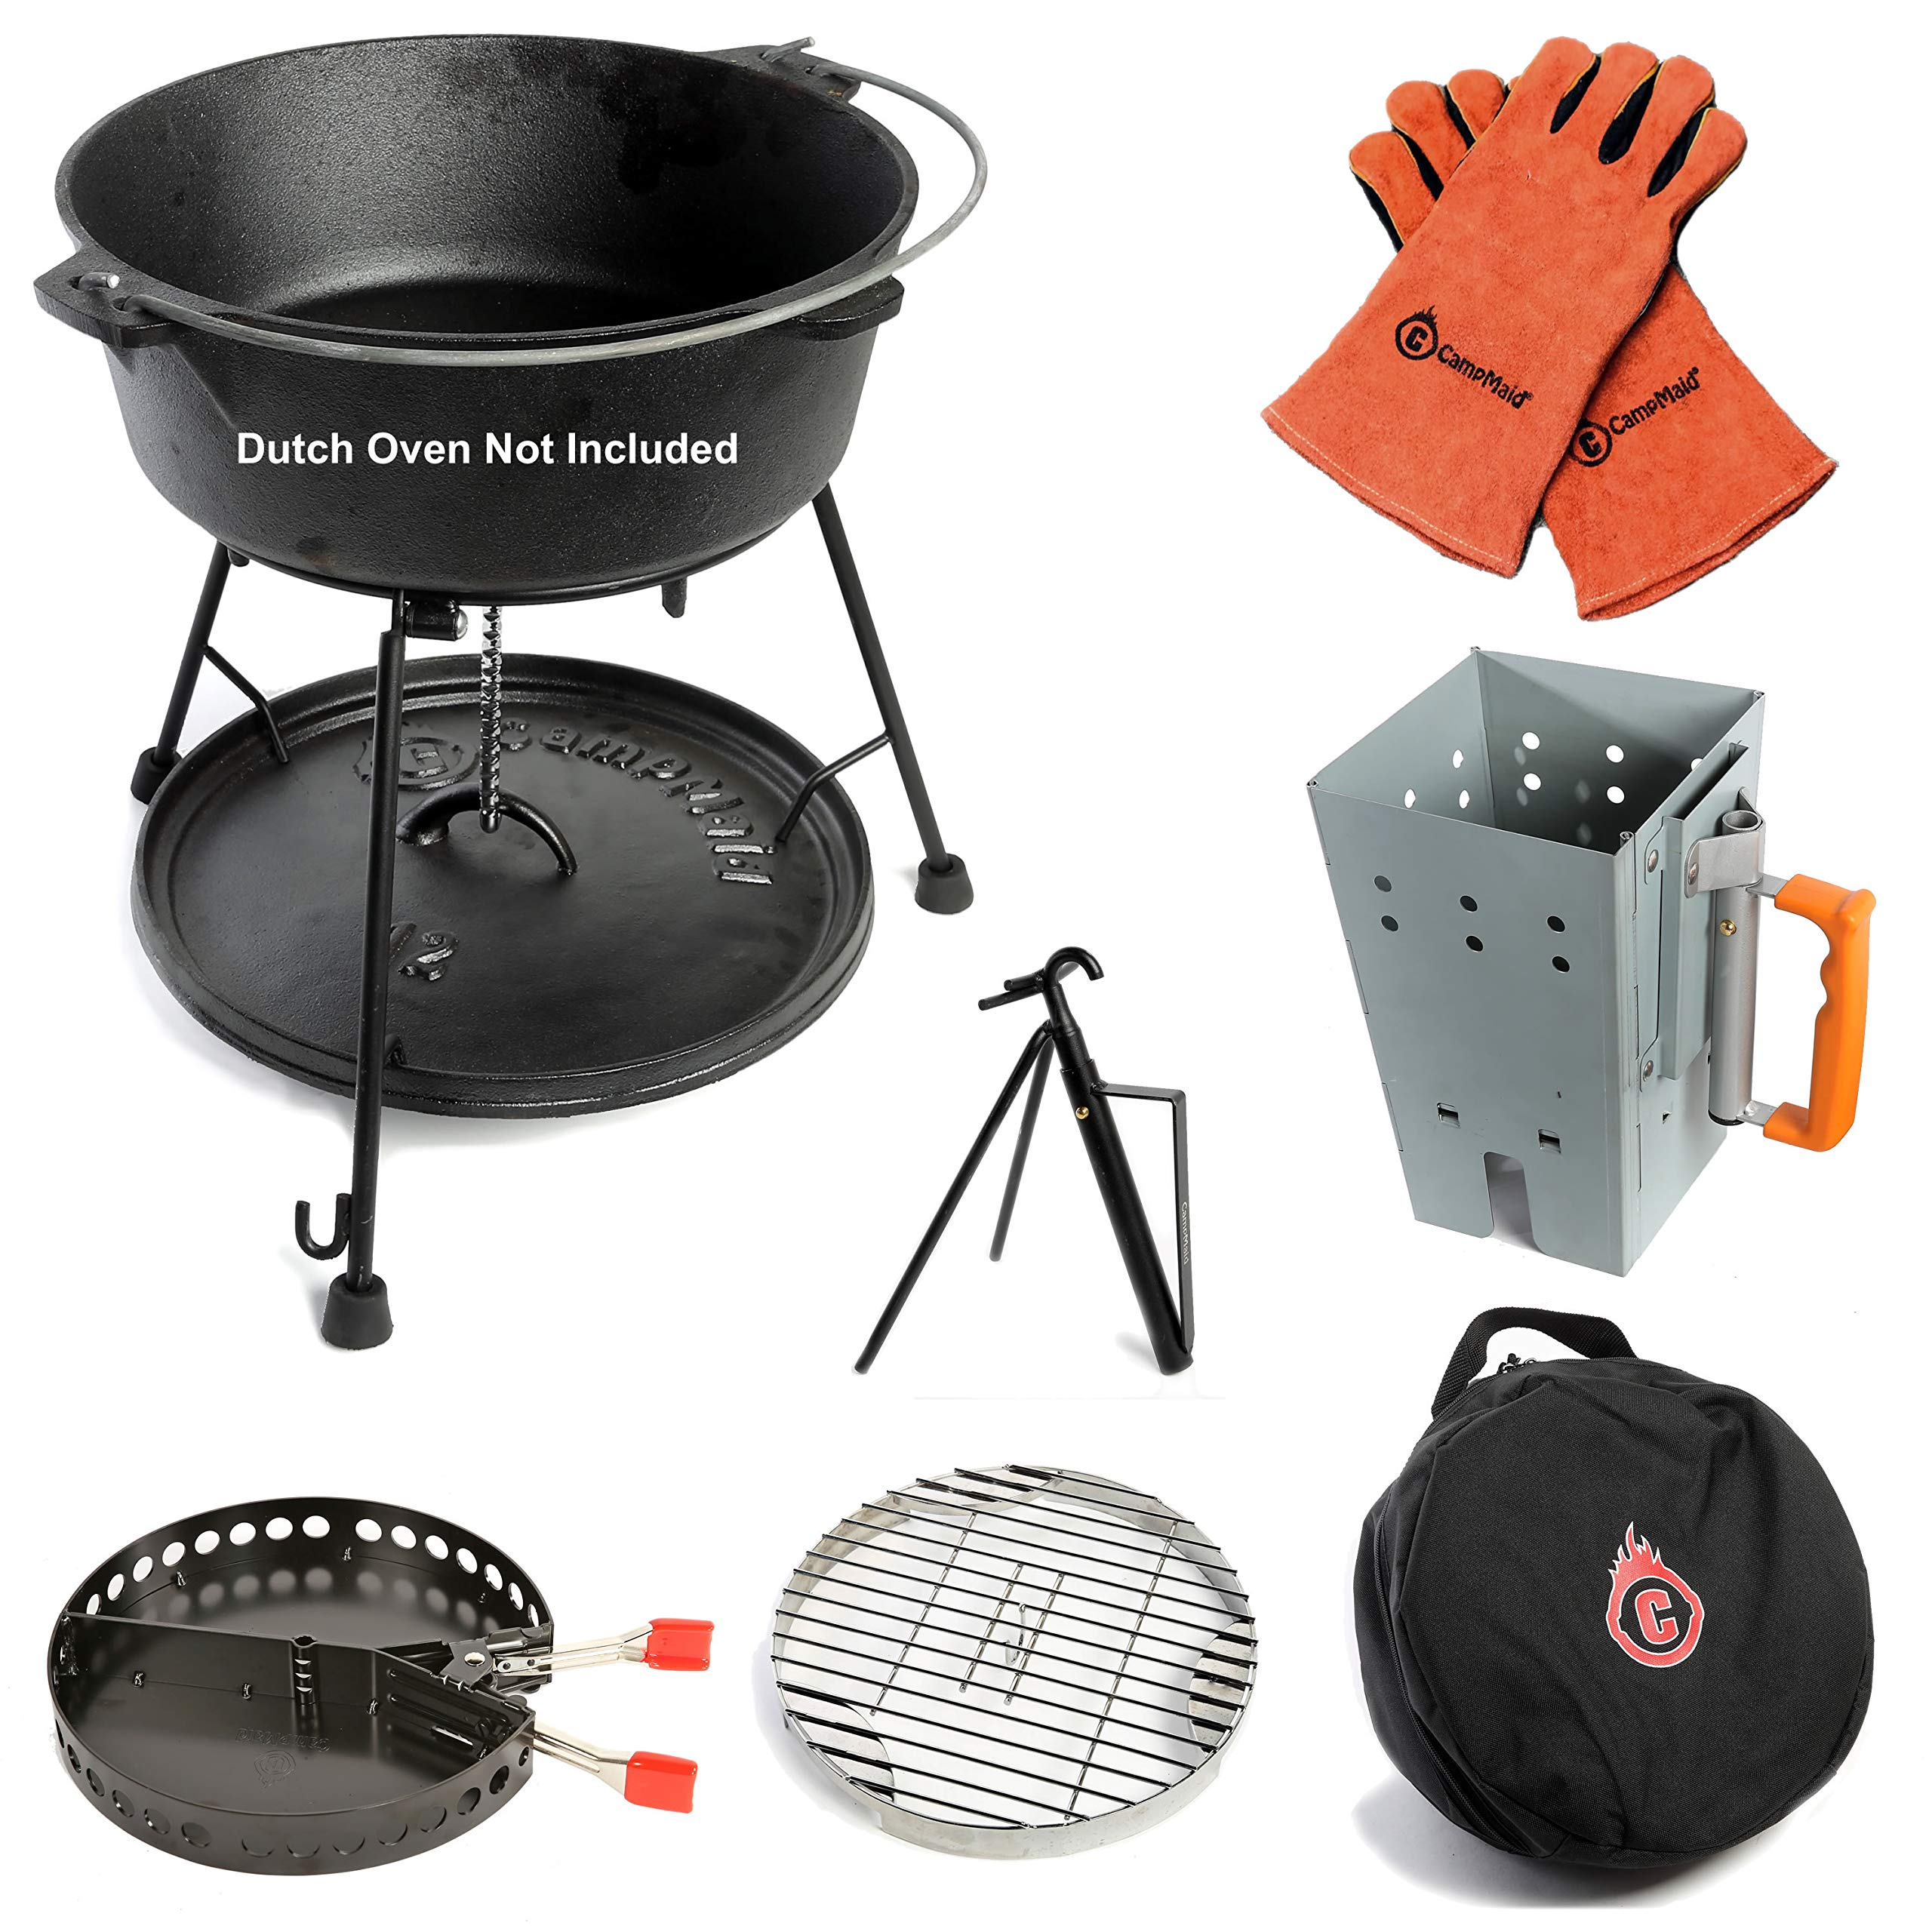 7-Piece Dutch Oven Tool Set – Award Winning Accessories Turn Your Cast Iron Pots Into a Grill, Smoker and Griddle – Lid Lifter, Charcoal Holder, Lid Stand, Charcoal Chimney, Trivet, Carry Case by CampMaid